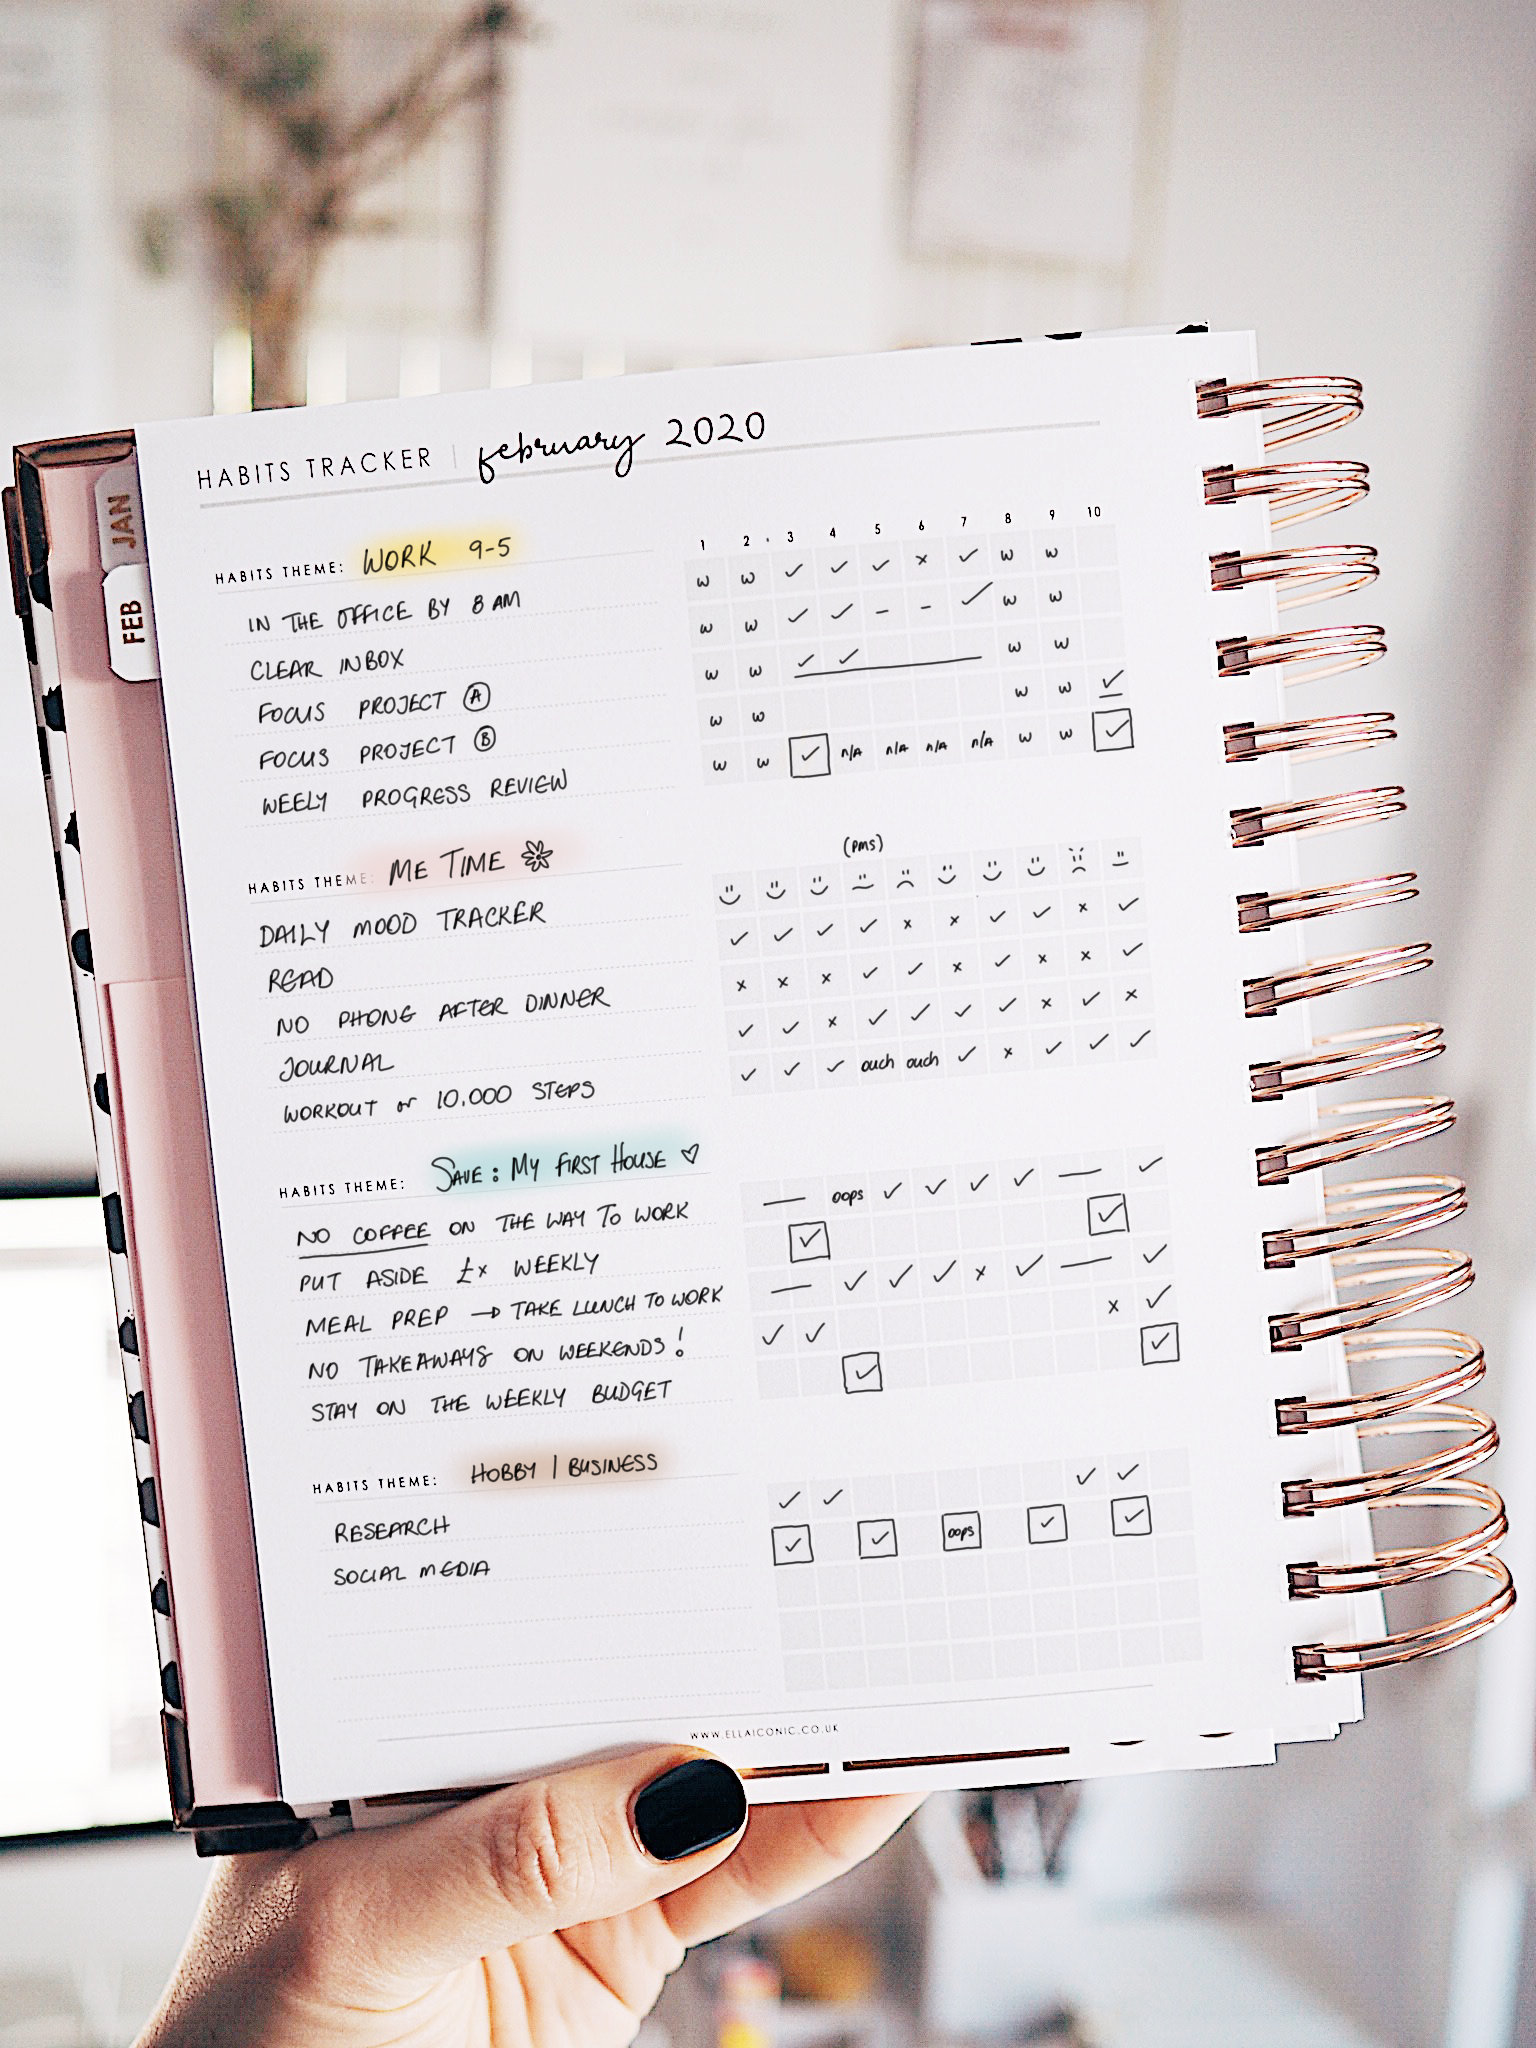 44 Ideas For Your Habits Tracker | CEO of My Own Life® Planner | Blog